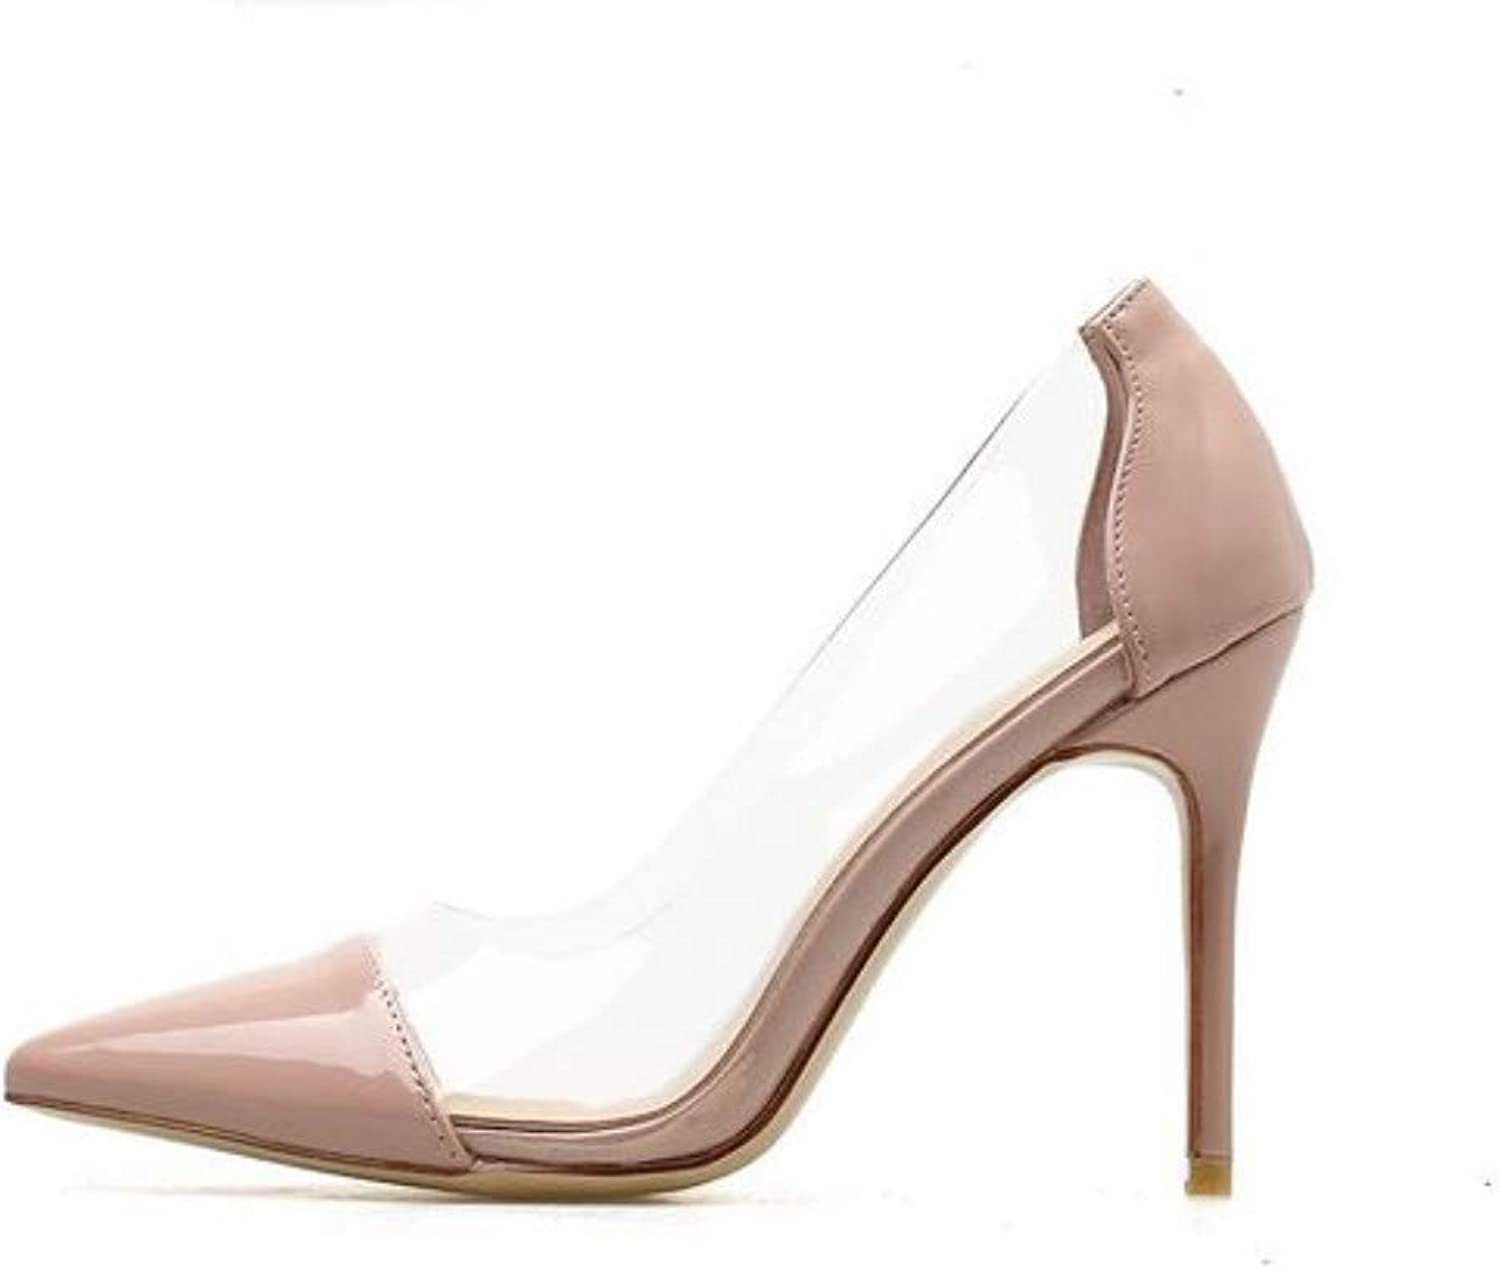 JQfashion Women's High-Heeled shoes Spring and Summer Tip Fine-Heeled High-Heeled Sandals Sexy Transparent and Fresh